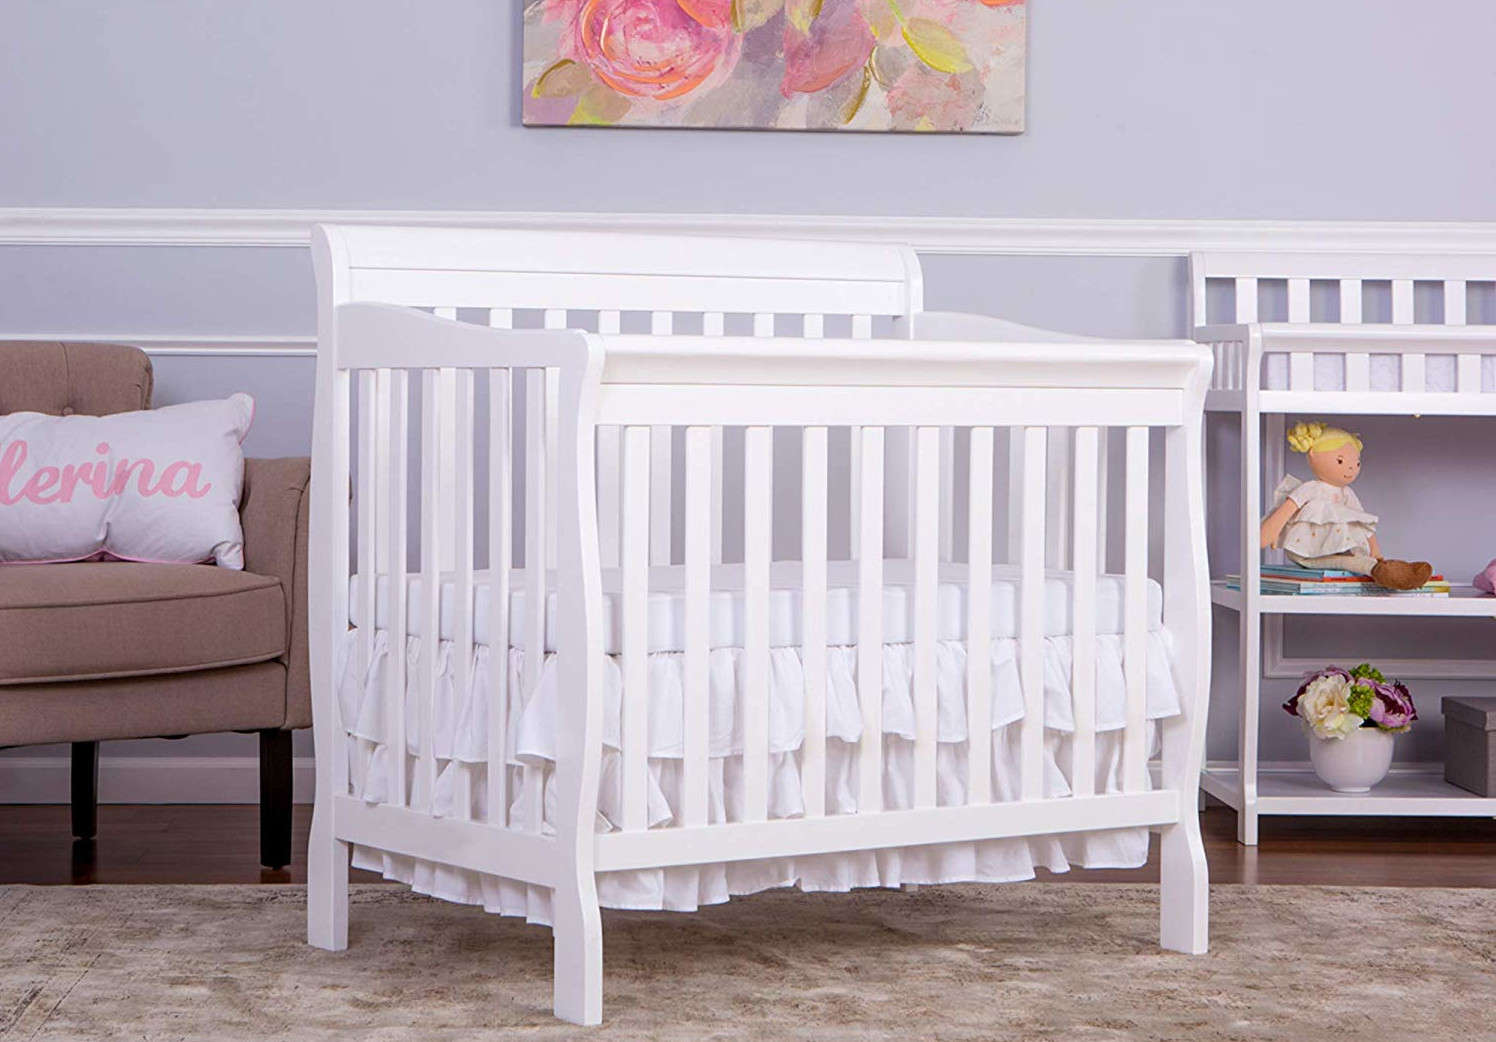 compare prices on cribs but always buy new